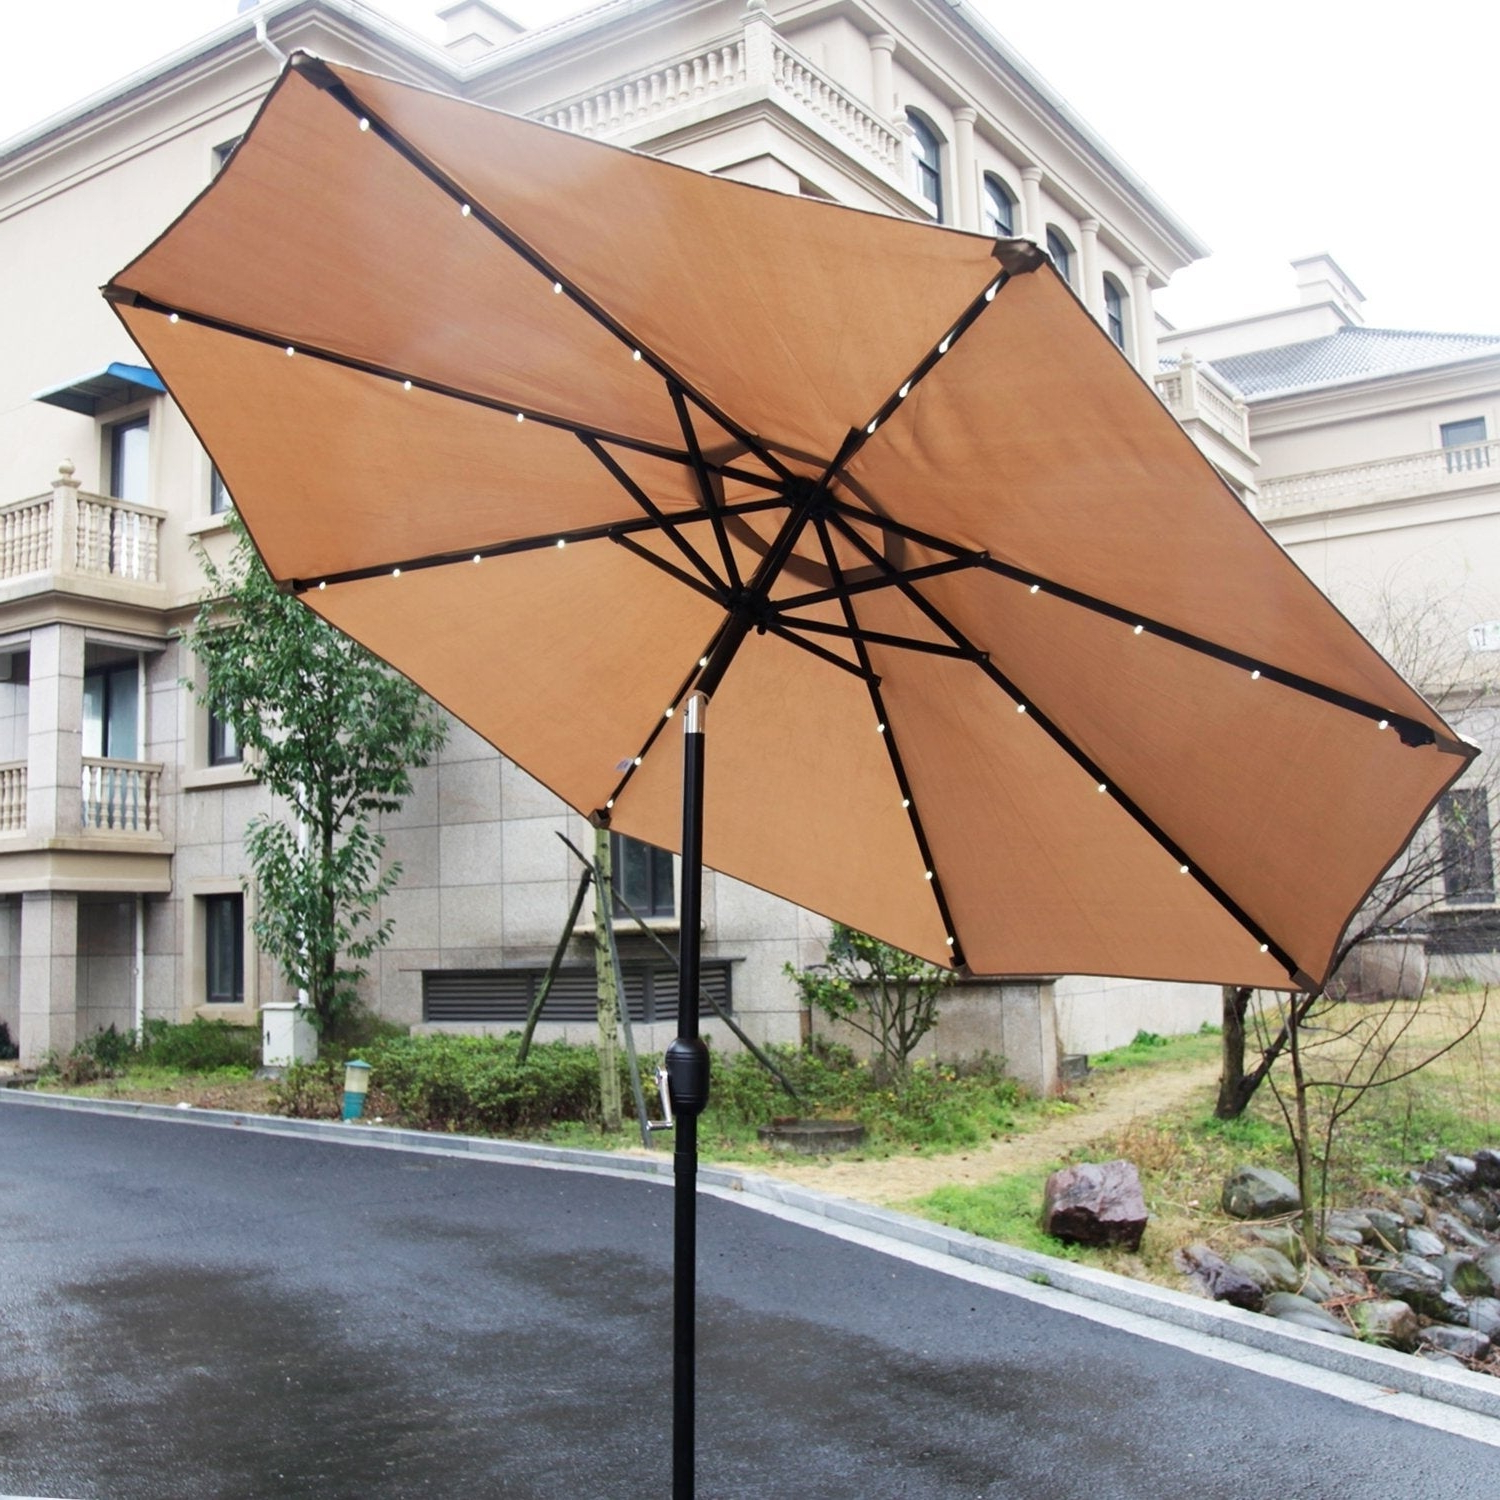 Well Liked Venice Lighted Umbrellas Intended For Kinbor 9Ft Patio Umbrella Led Lighted Hanging Umbrella Solar Power Table Market Umbrella (View 10 of 20)